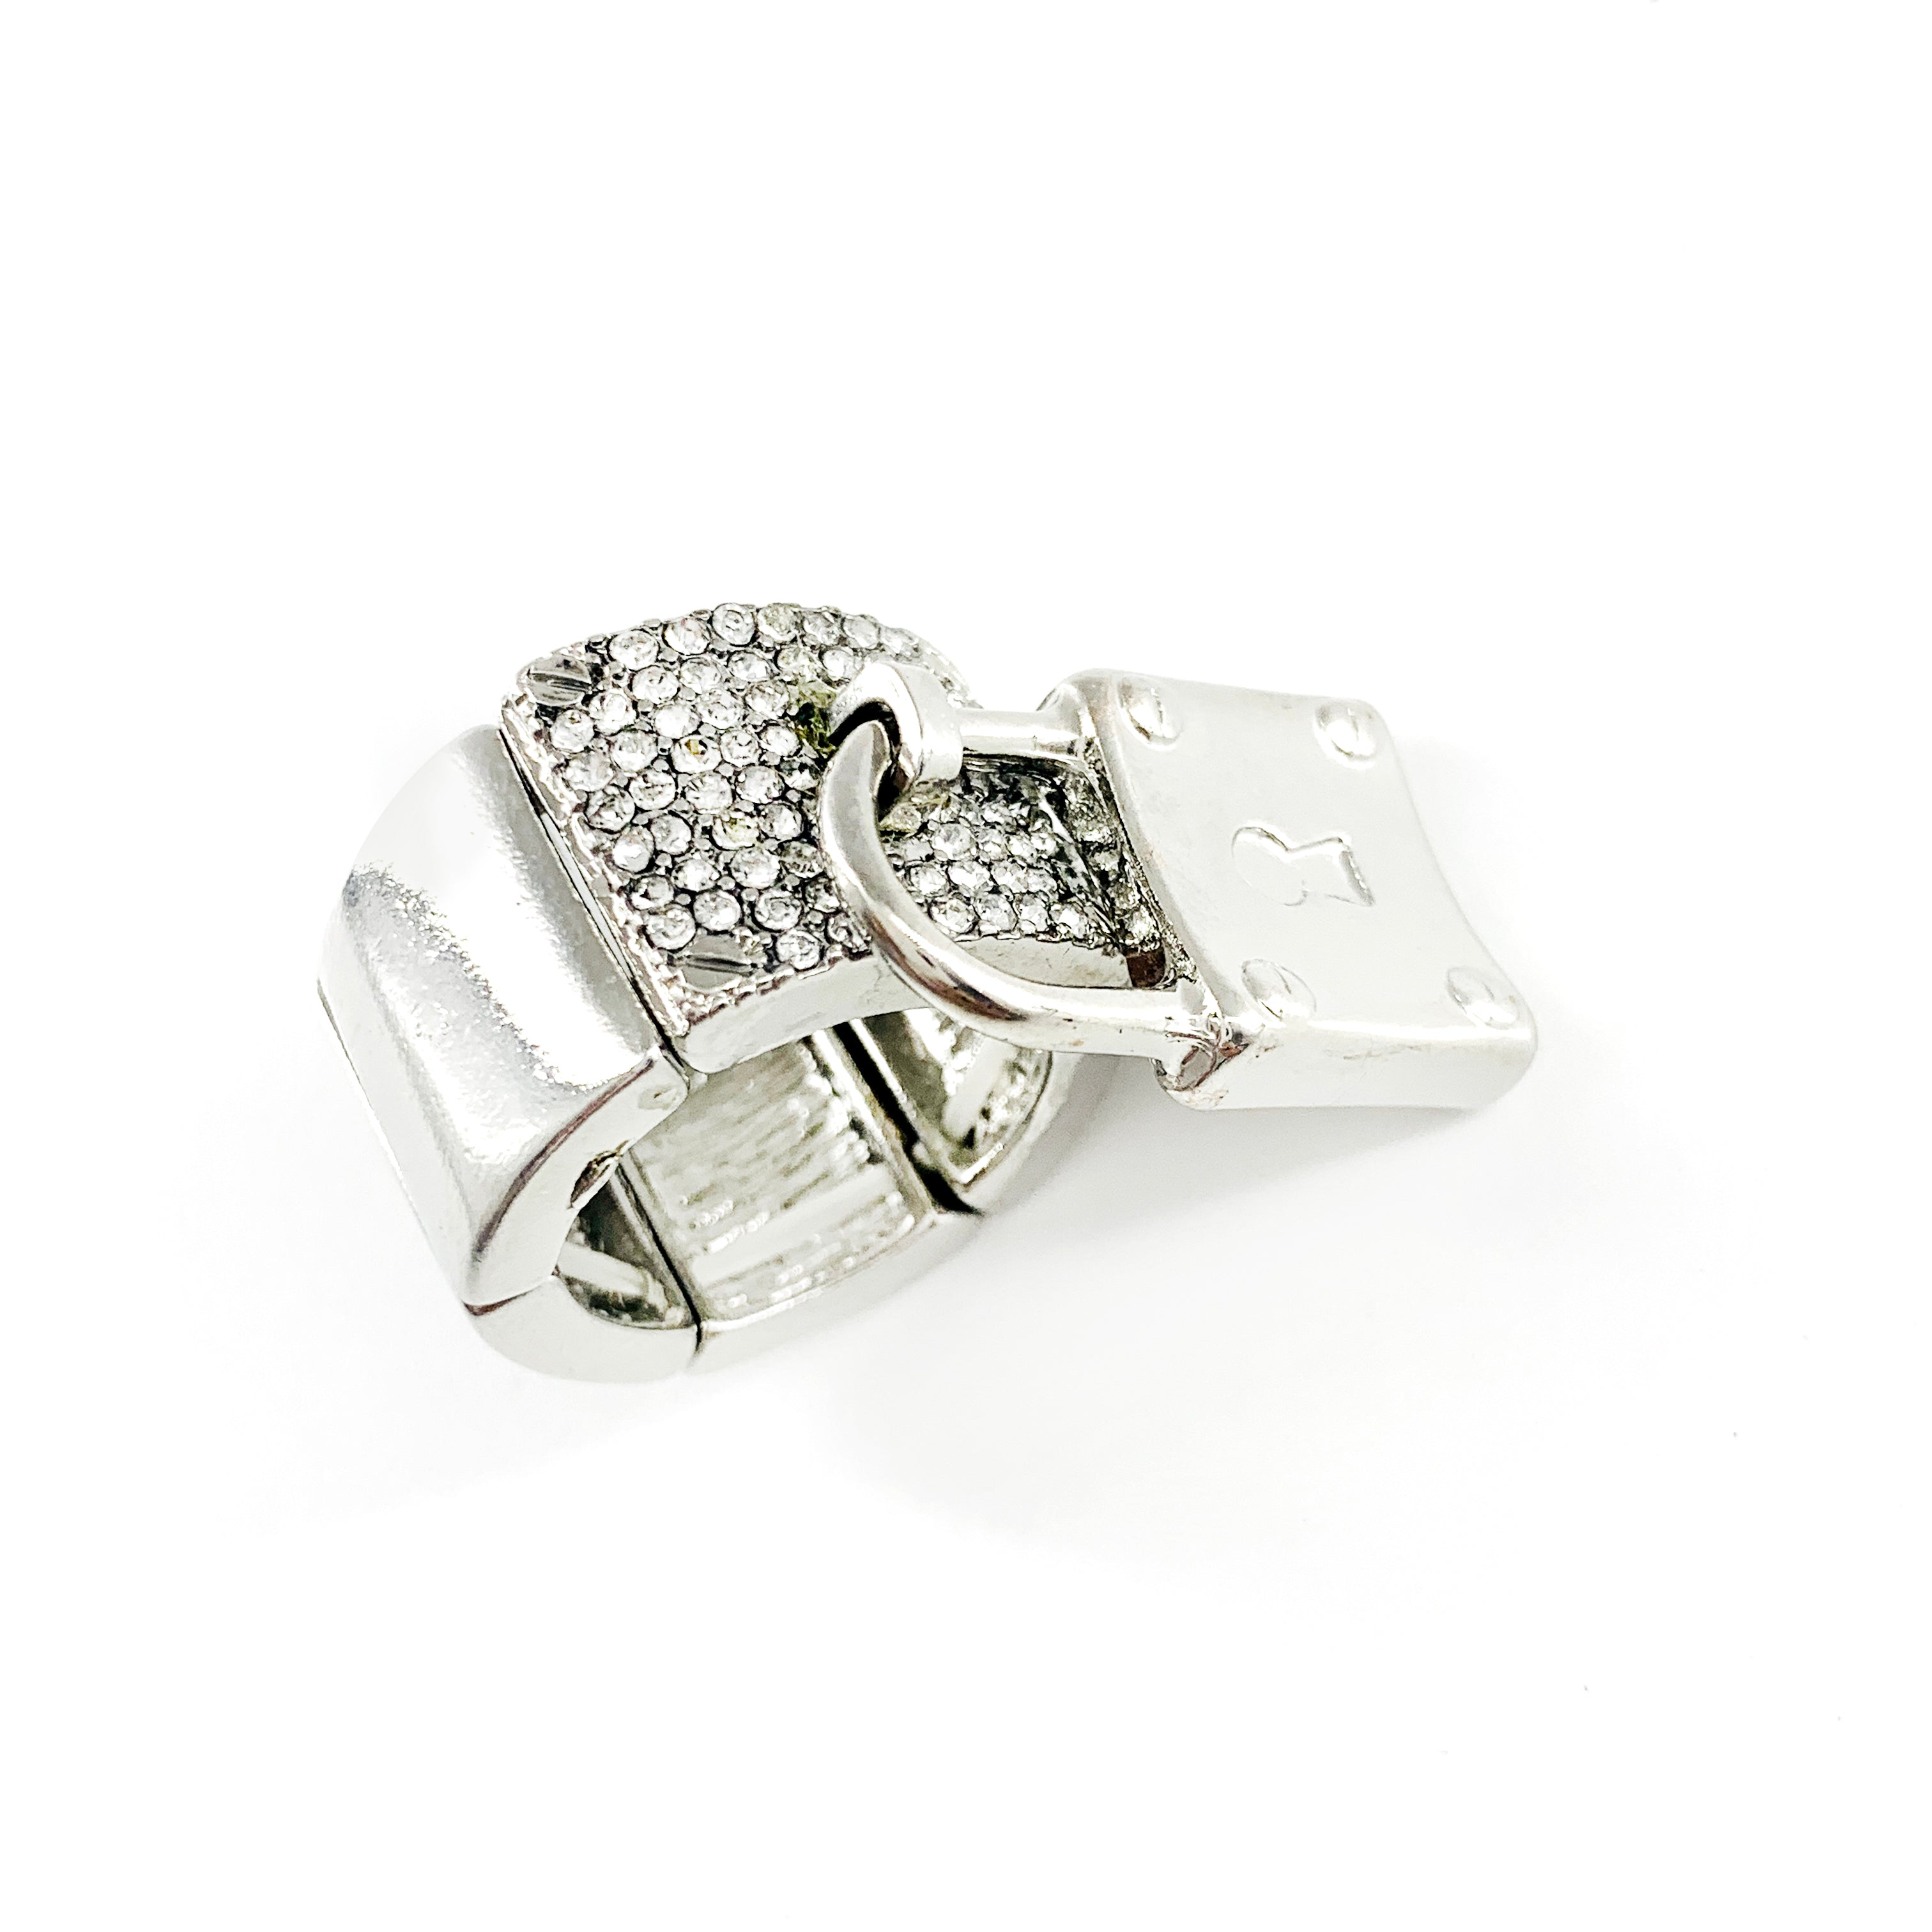 Chunky diamante ring with lock charm and elastic band